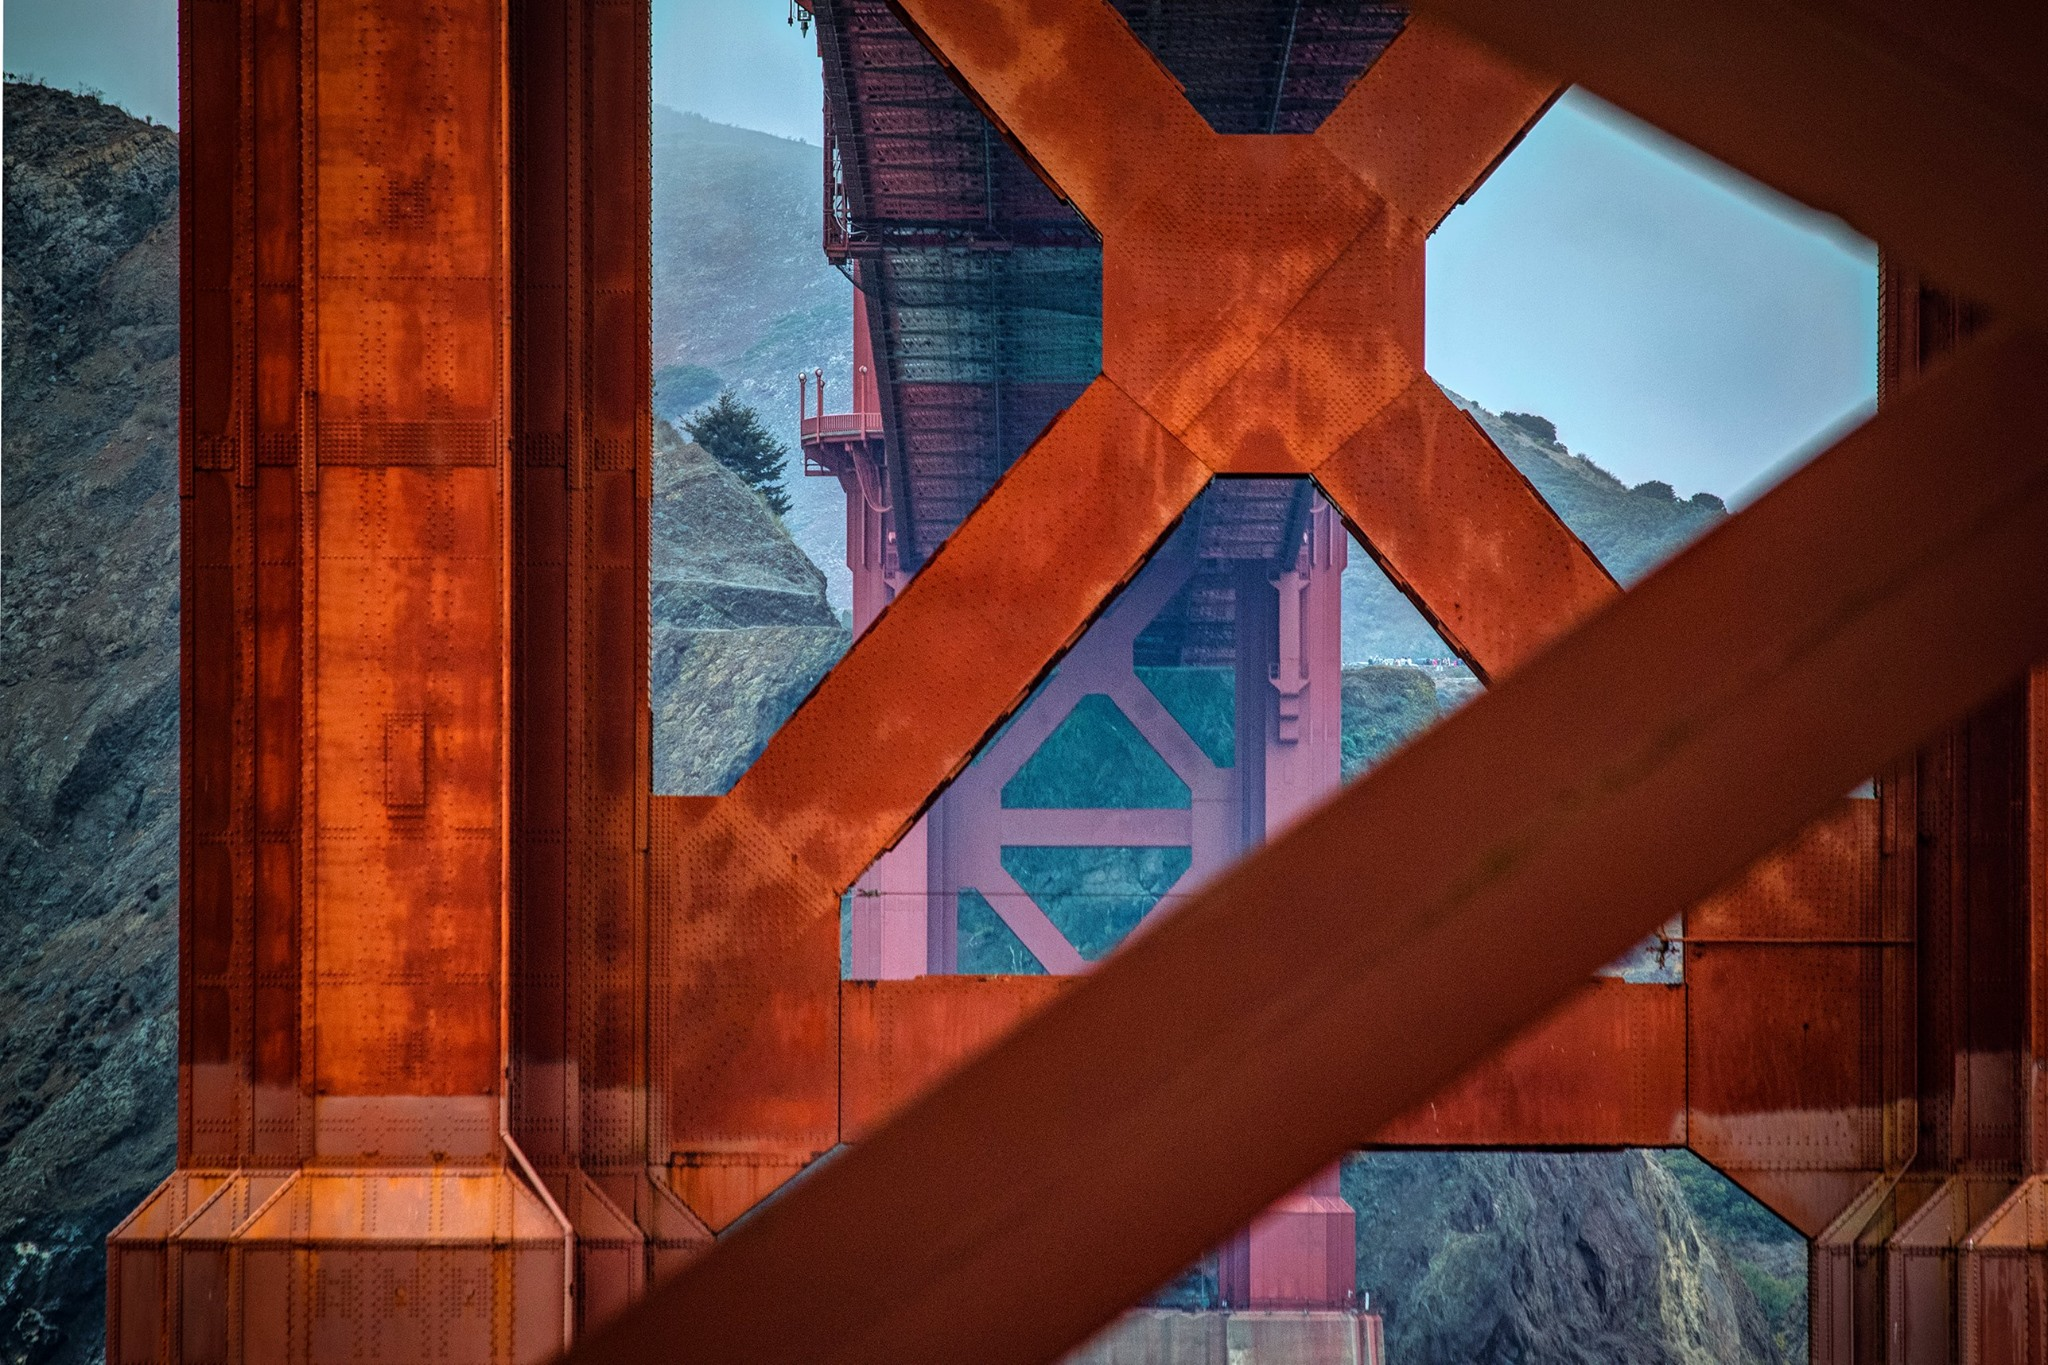 design of Golden Gate Bridge San Francisco